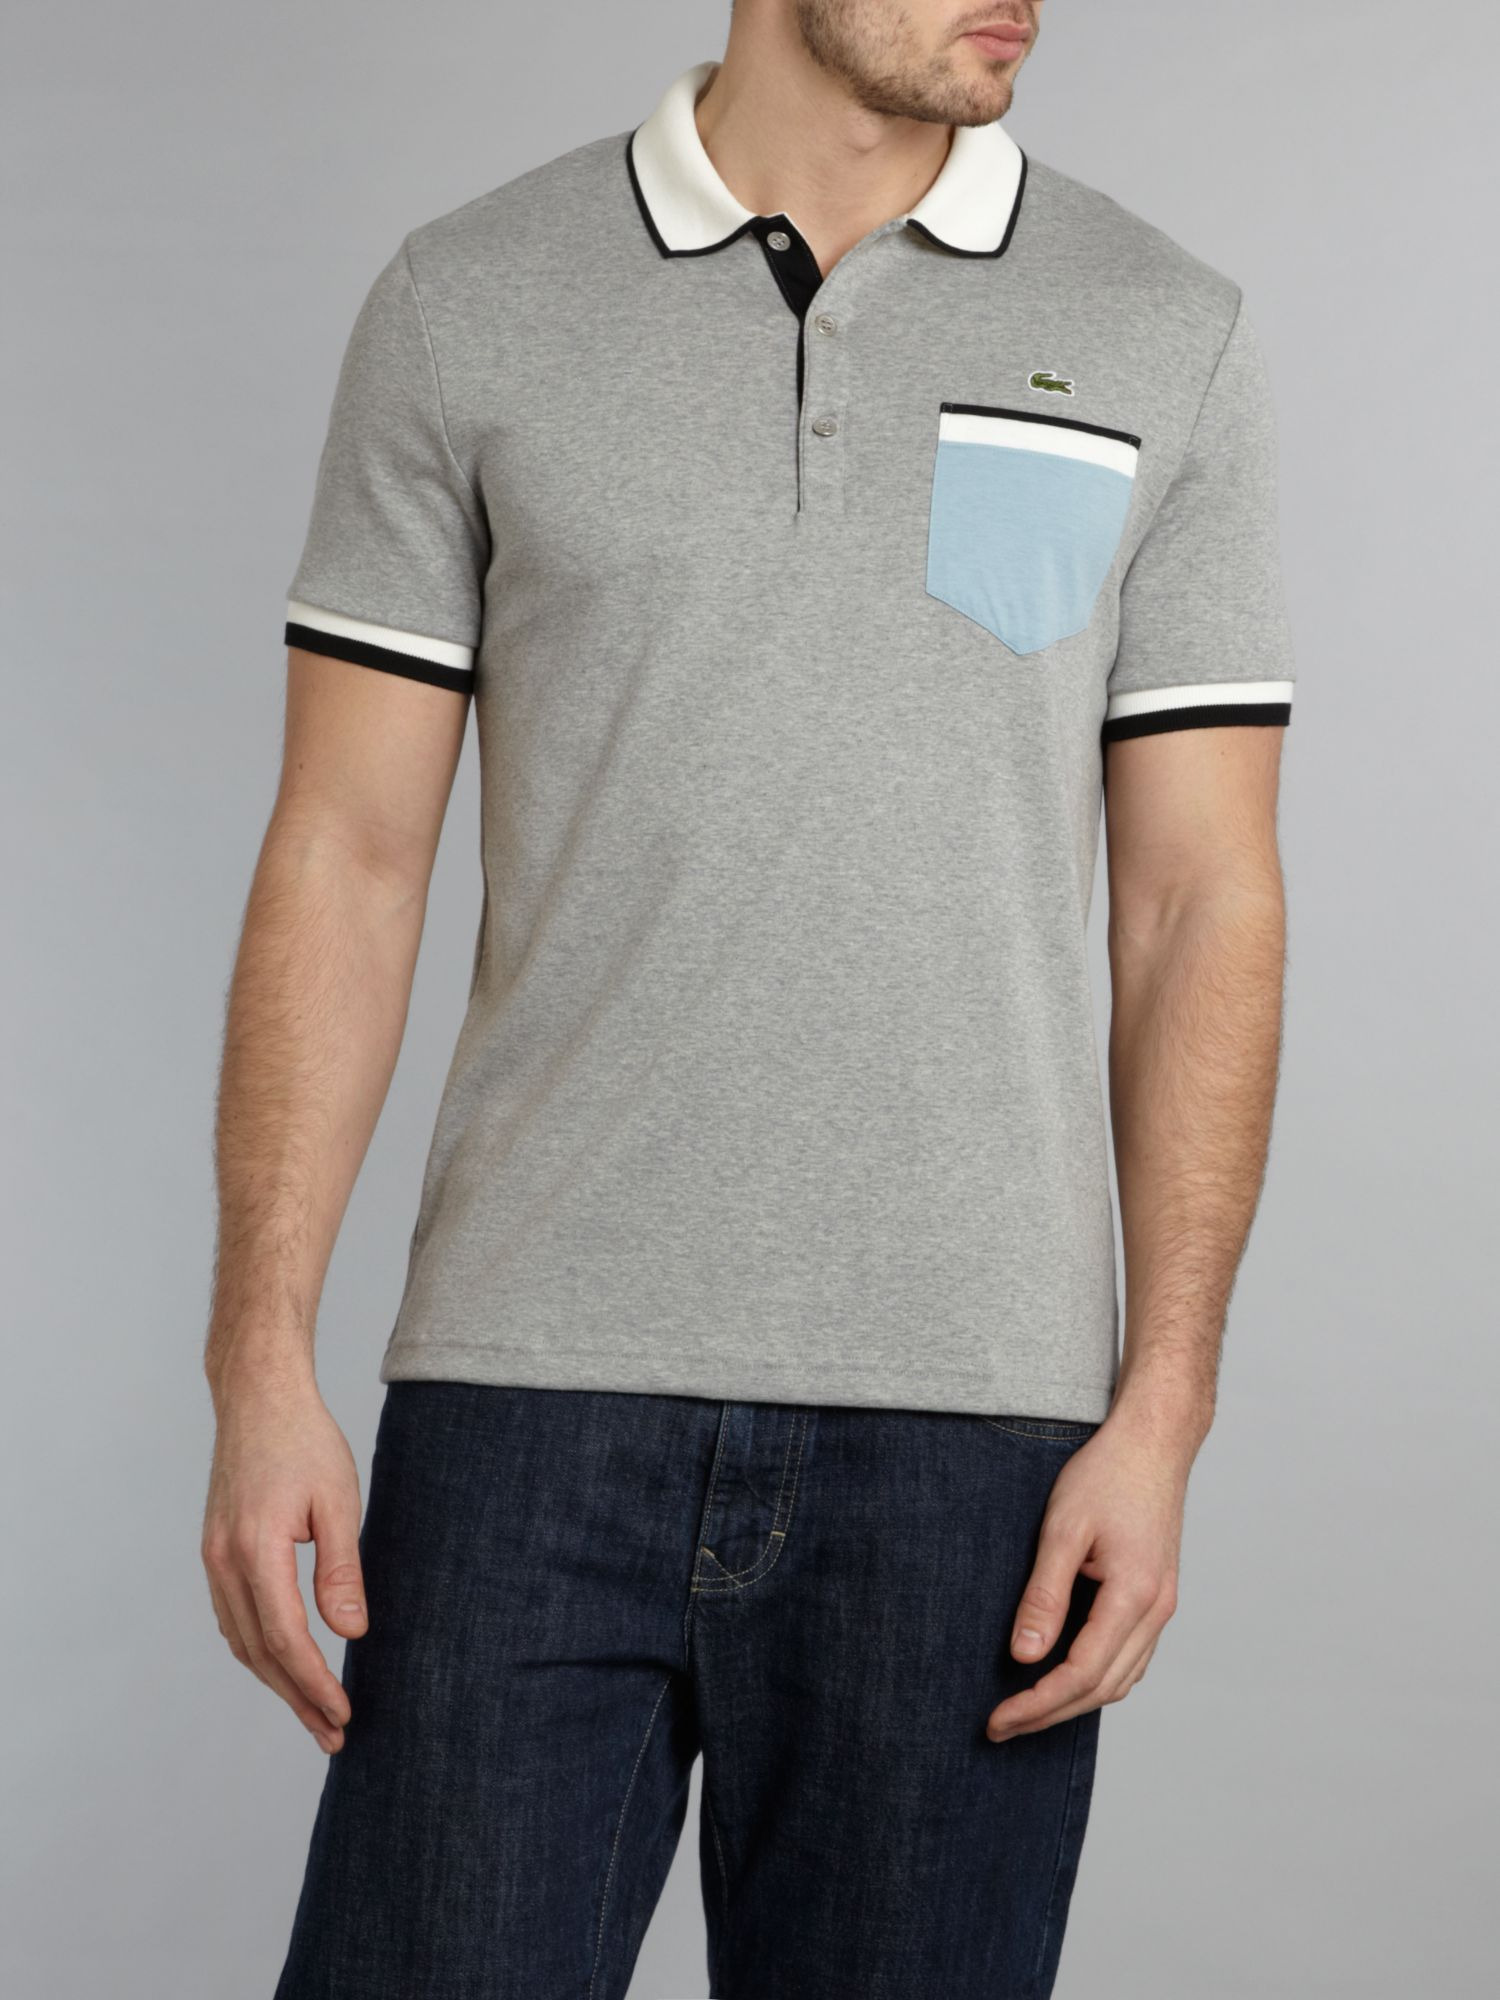 Lacoste contrast pocket polo shirt in gray for men lyst for Two pocket polo shirt